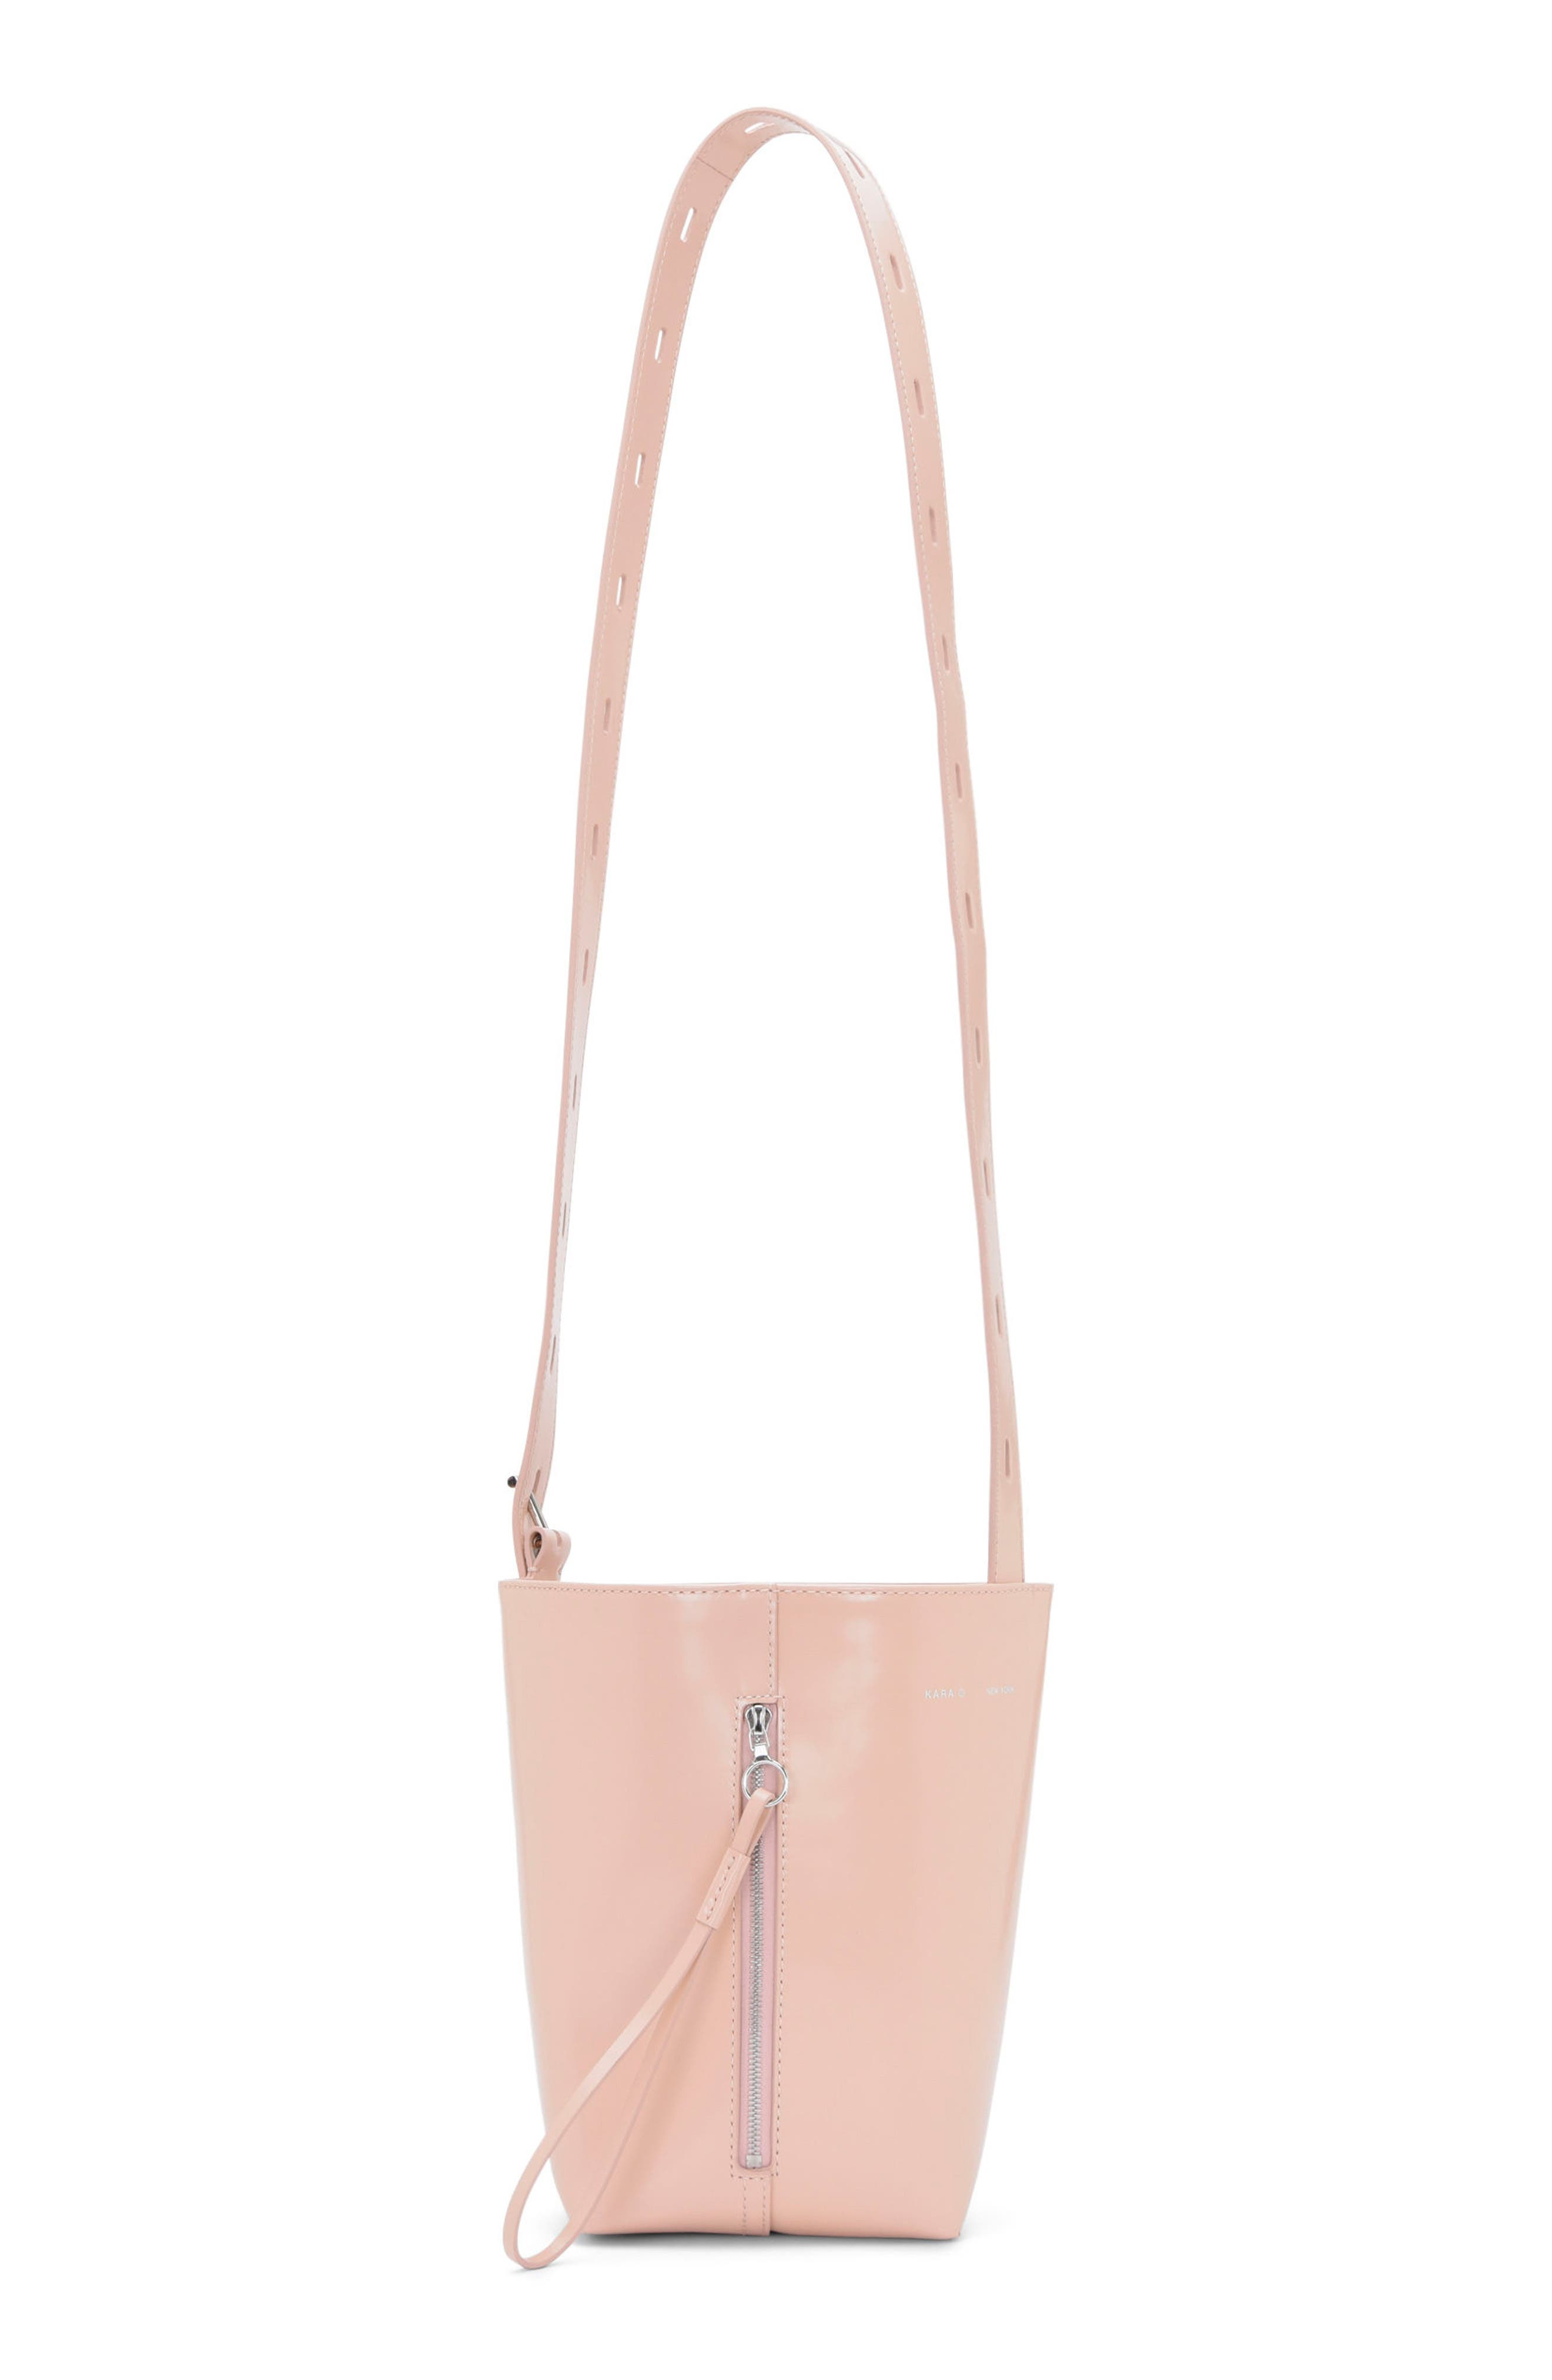 KARA Leather Panel Pail Convertible Leather Bucket Bag